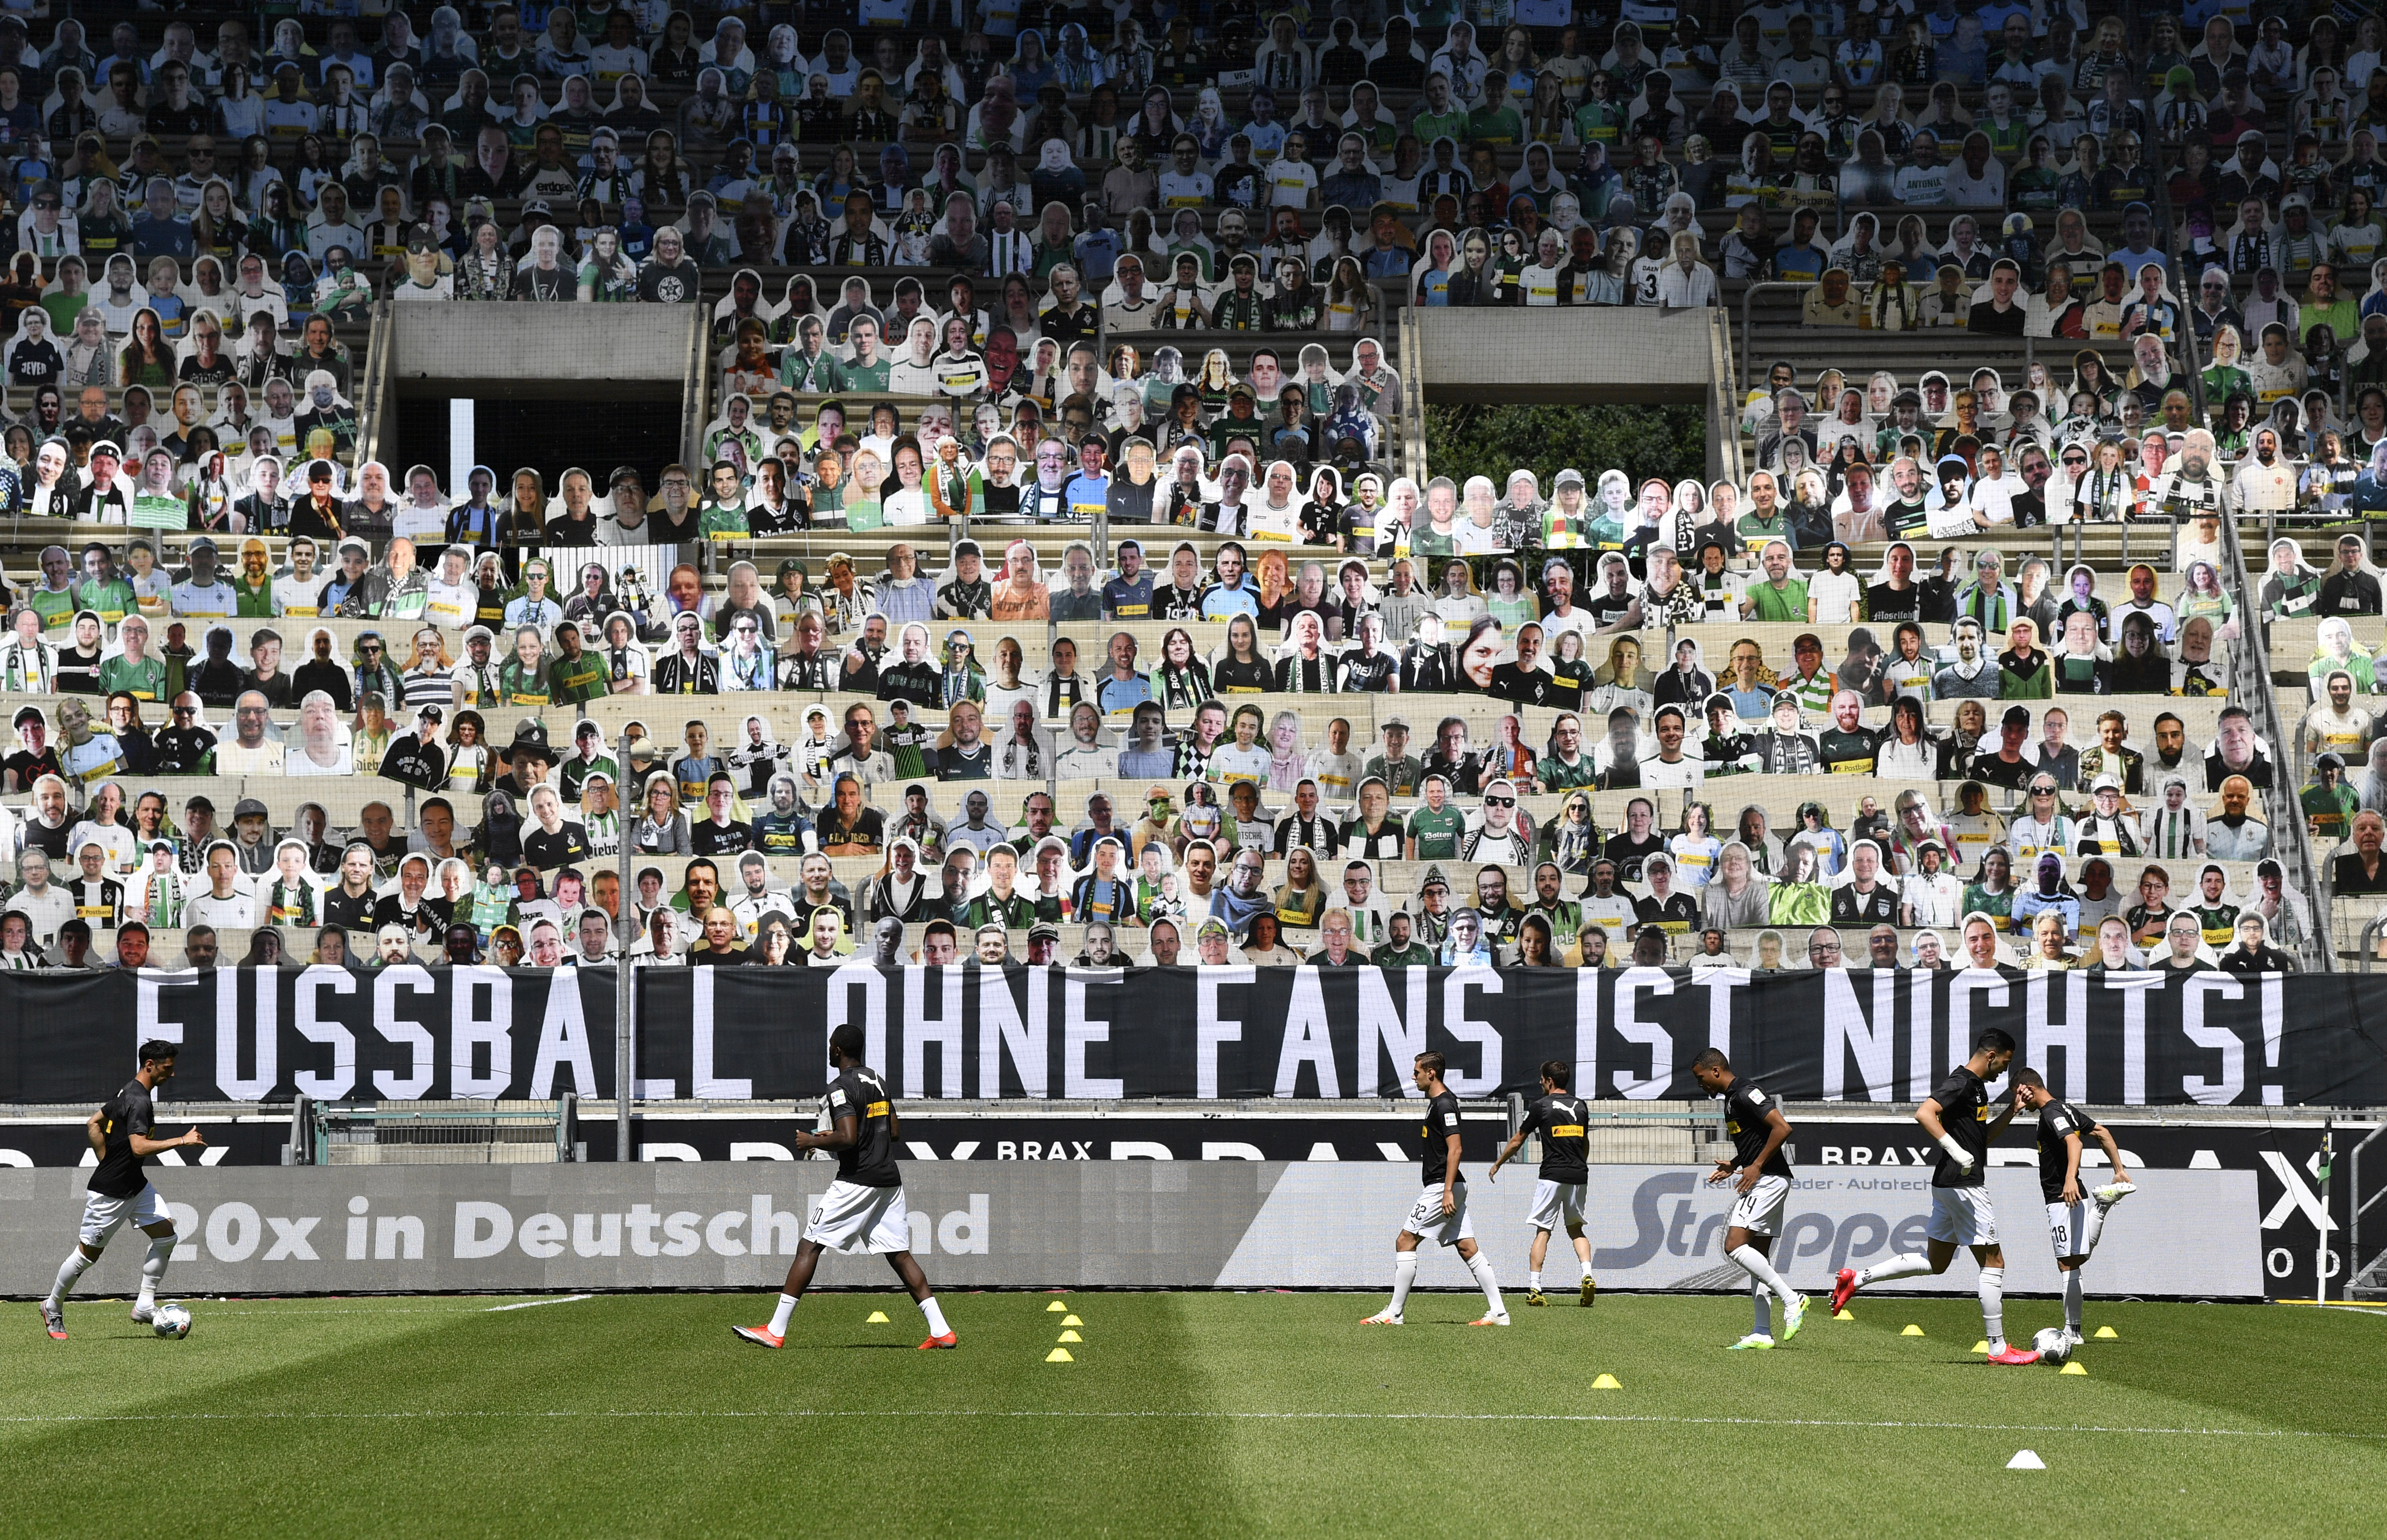 """Cardboards with photos of Moenchengladbach fans displayed on the stands during warm up prior the German Bundesliga soccer match between Borussia Moenchengladbach and Union Berlin in Moenchengladbach, Germany, Sunday, May 31, 2020. A banner reads: """"For Borussia. Against ghost games!"""". The German Bundesliga becomes the world's first major soccer league to resume after a two-month suspension because of the coronavirus pandemic. (AP Photo/Martin Meissner, Pool)"""